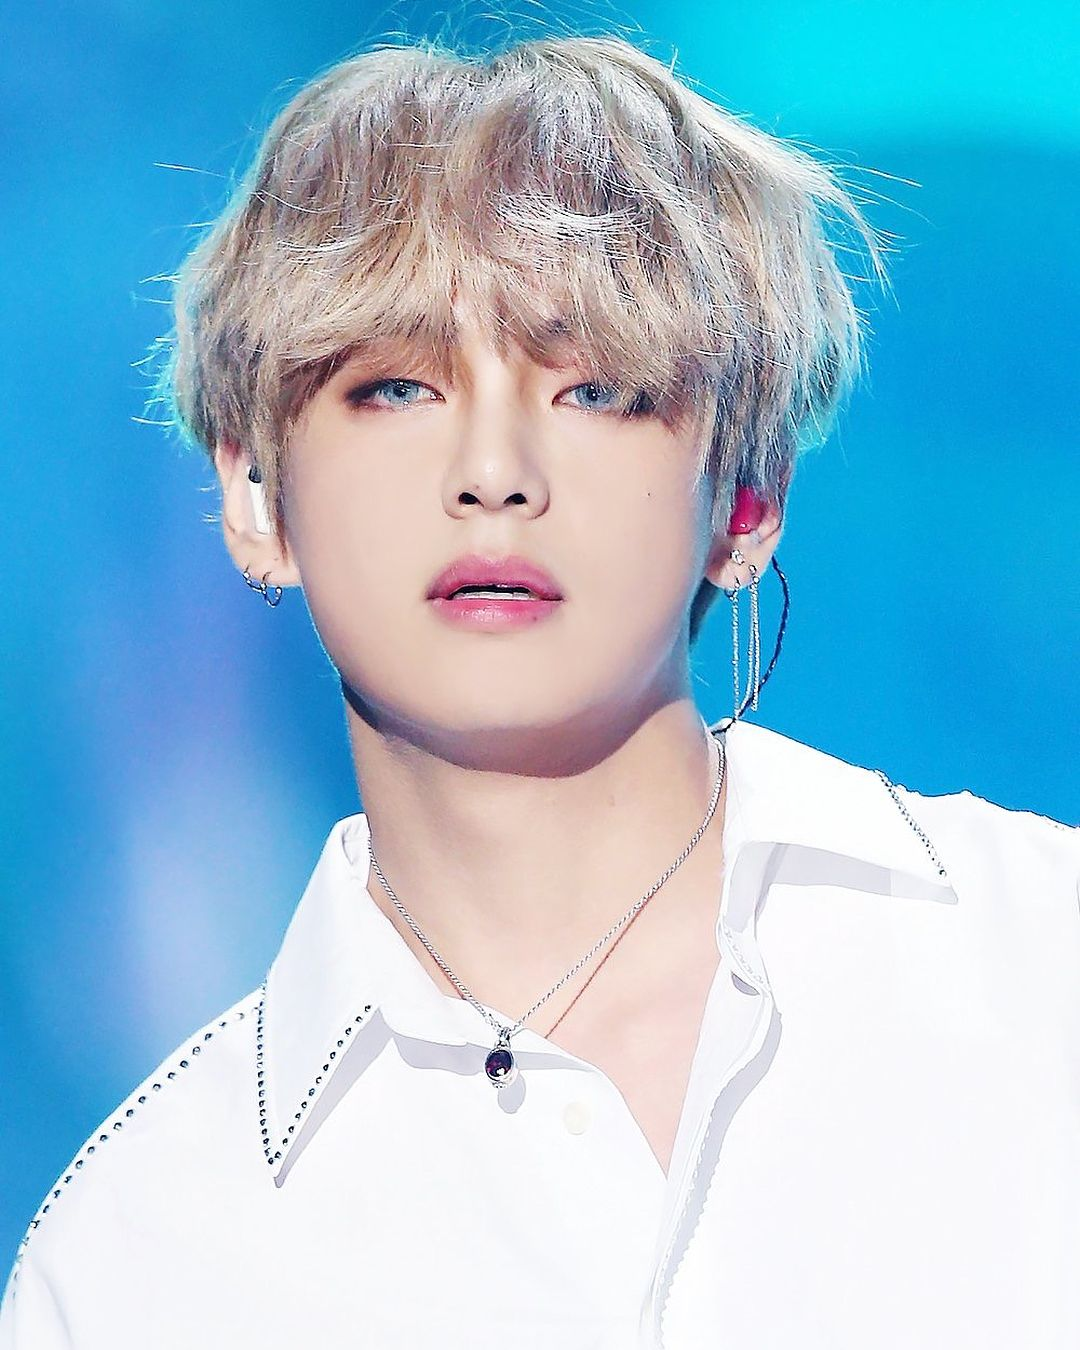 Most Handsome K Pop Male Idols Bts V Kim Tae Hyung Kpop K Pop Music K Pop Boy Groups Best K Pop Boy Bands Top K Pop Bts Taehyung Taehyung Bts V